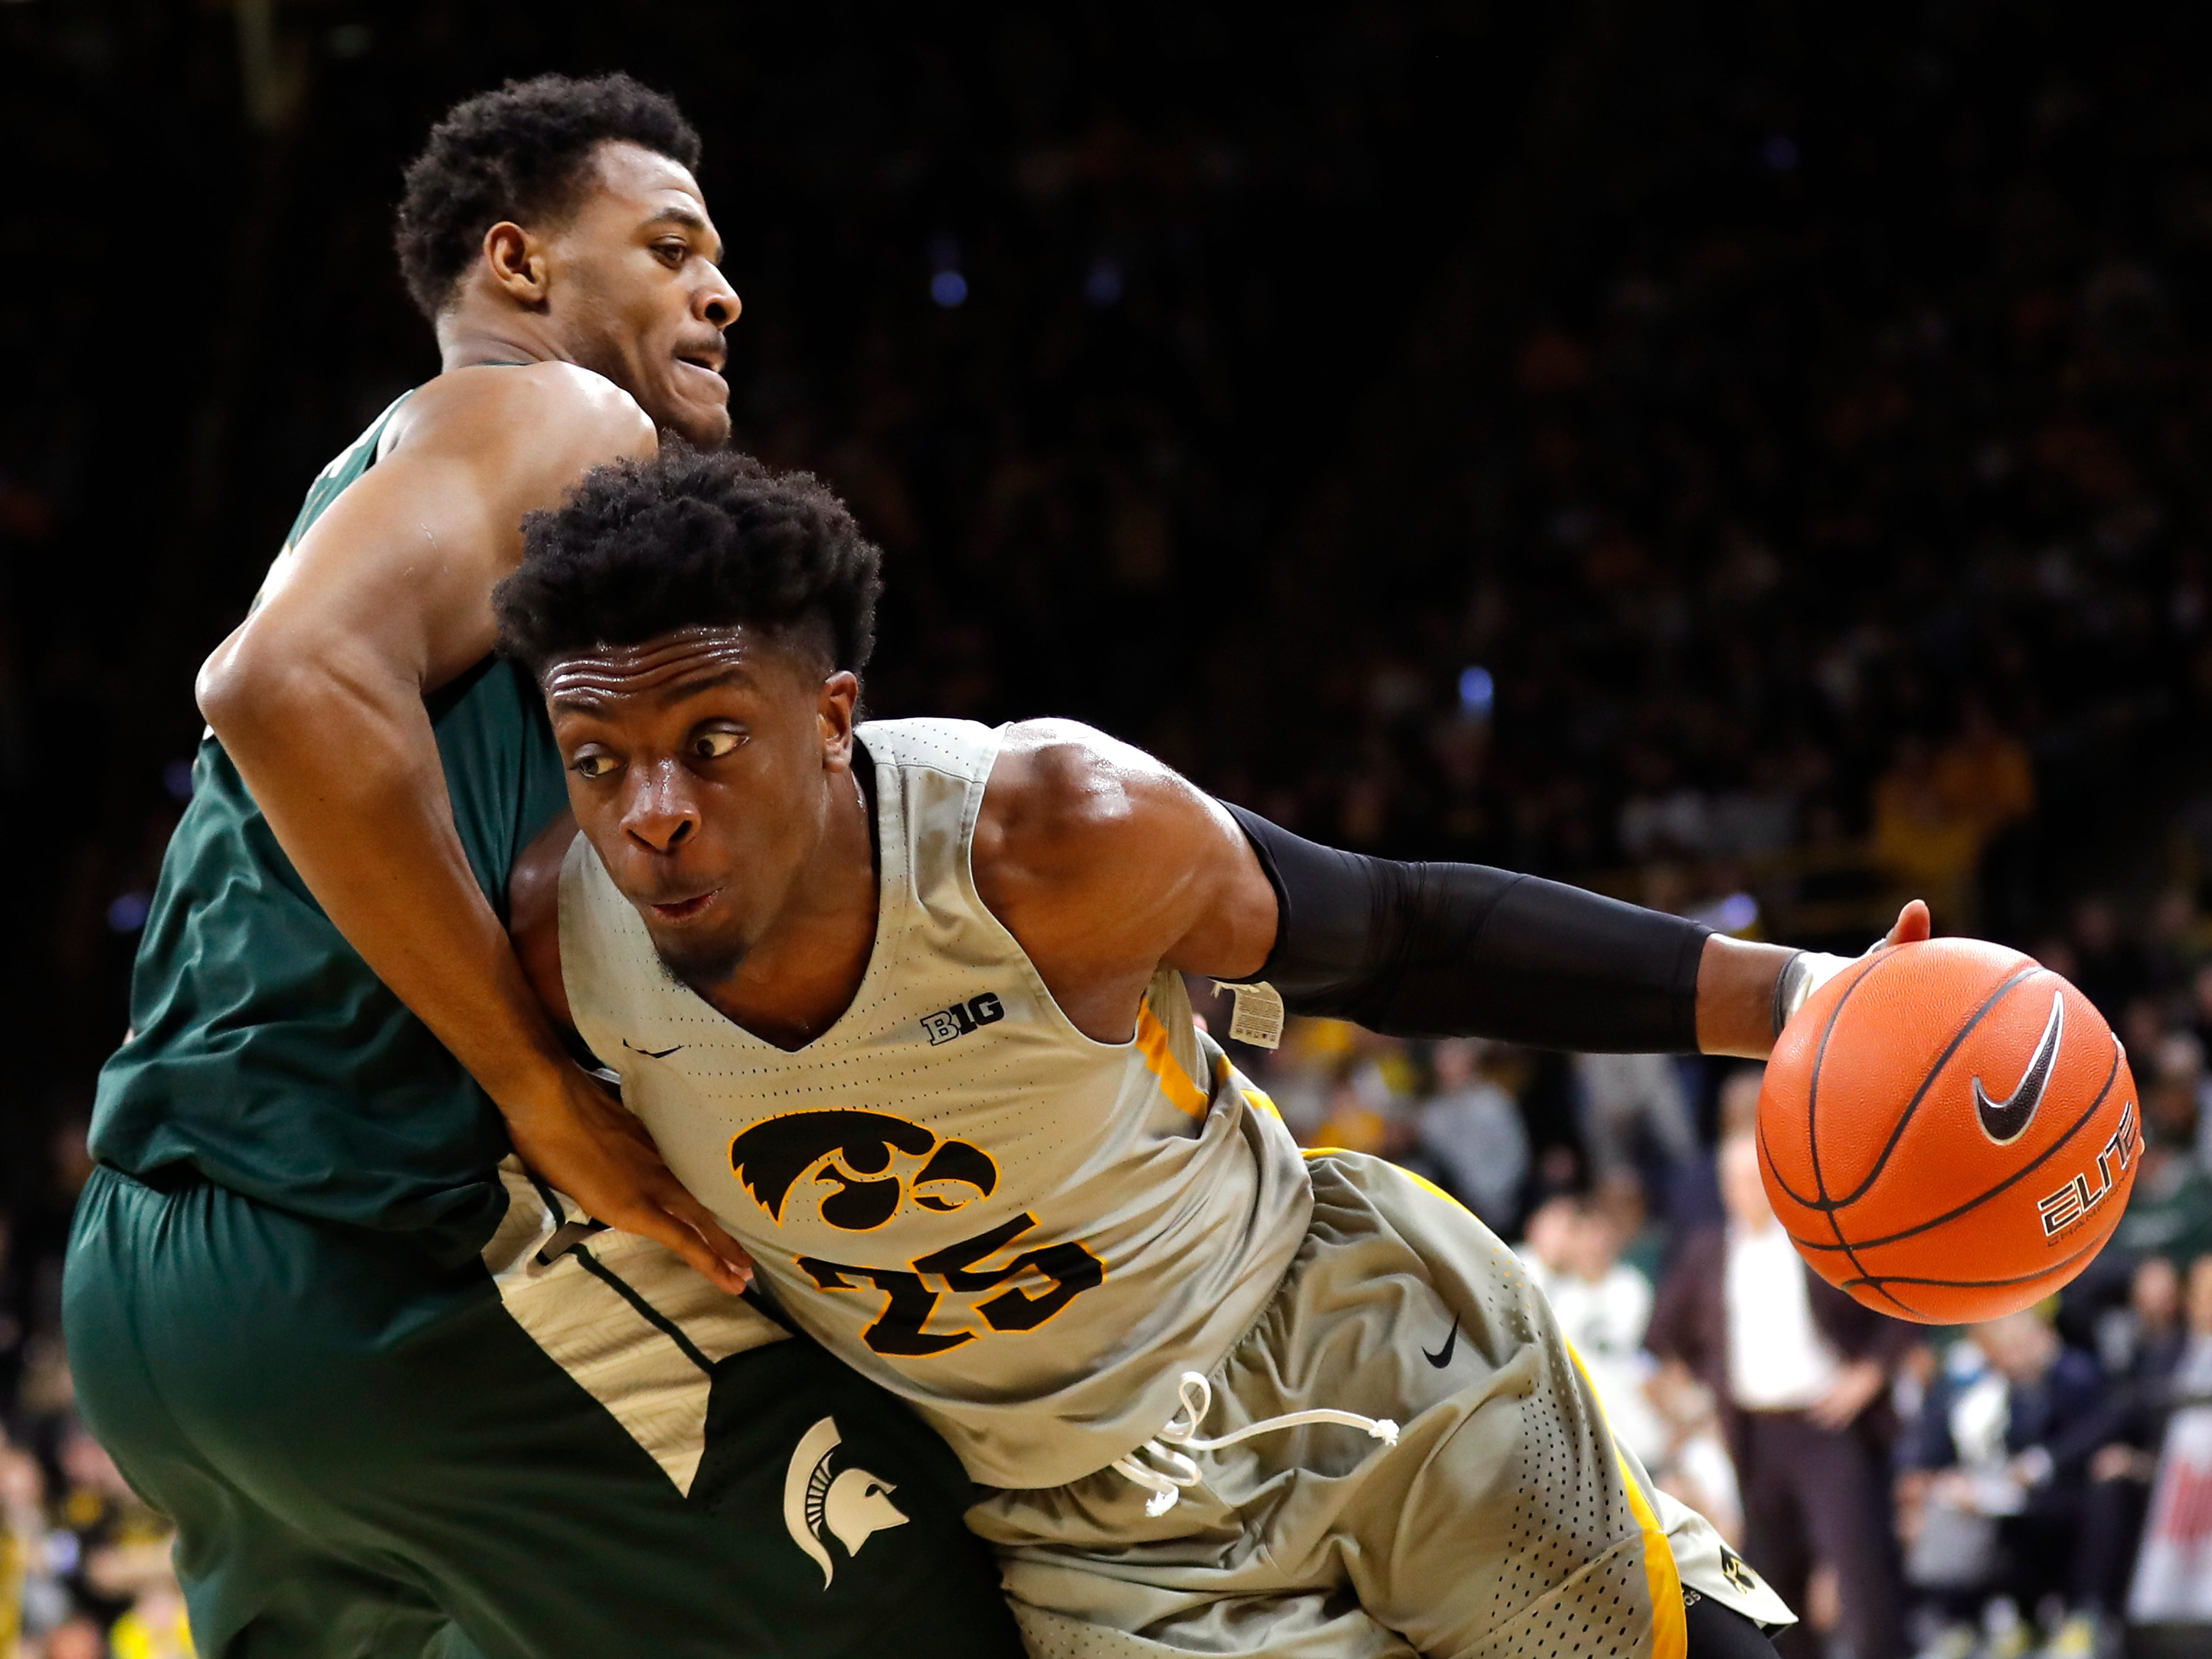 Iowa forward Tyler Cook drives past Michigan State forward Xavier Tillman, left, during the second half of an NCAA college basketball game Thursday, Jan. 24, 2019, in Iowa City, Iowa.